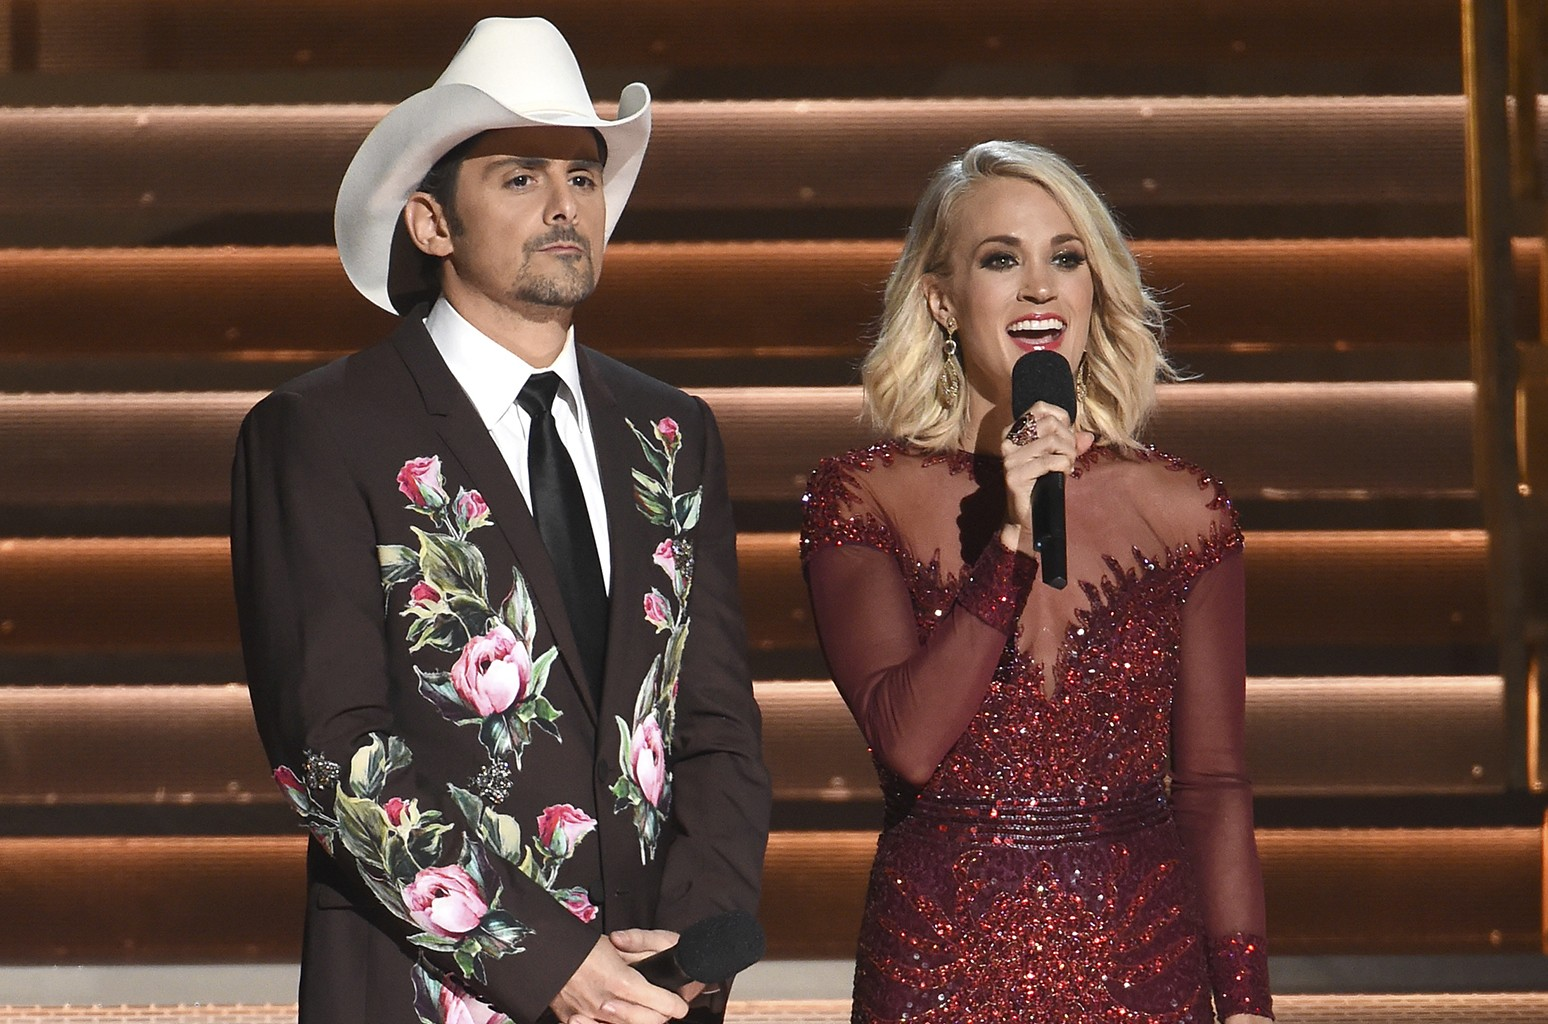 Brad Paisley and Carrie Underwood speak at the 50th annual CMA Awards